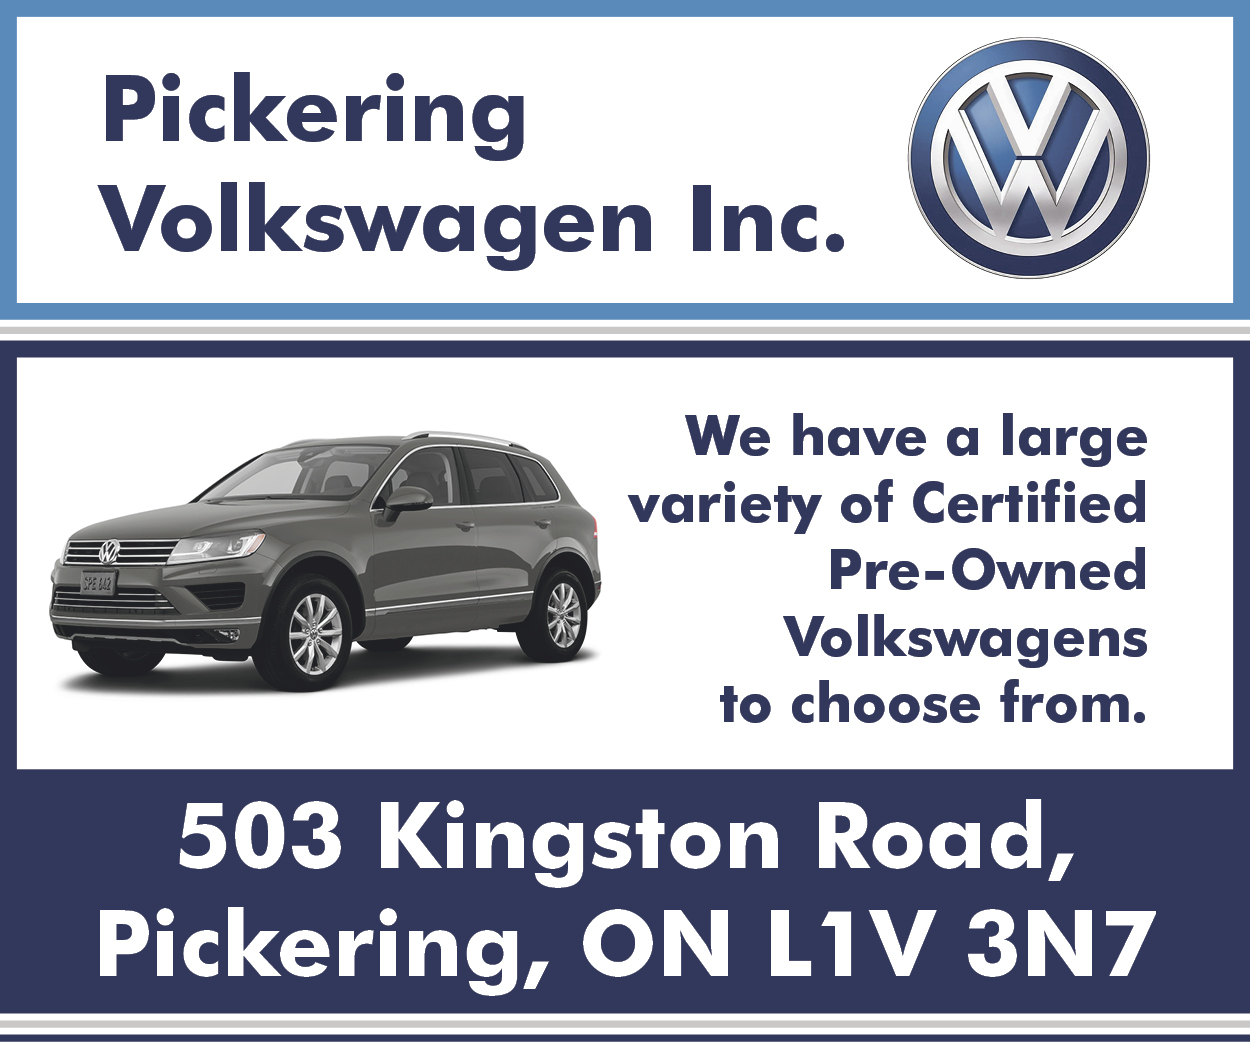 More from Pickering Volkswagen